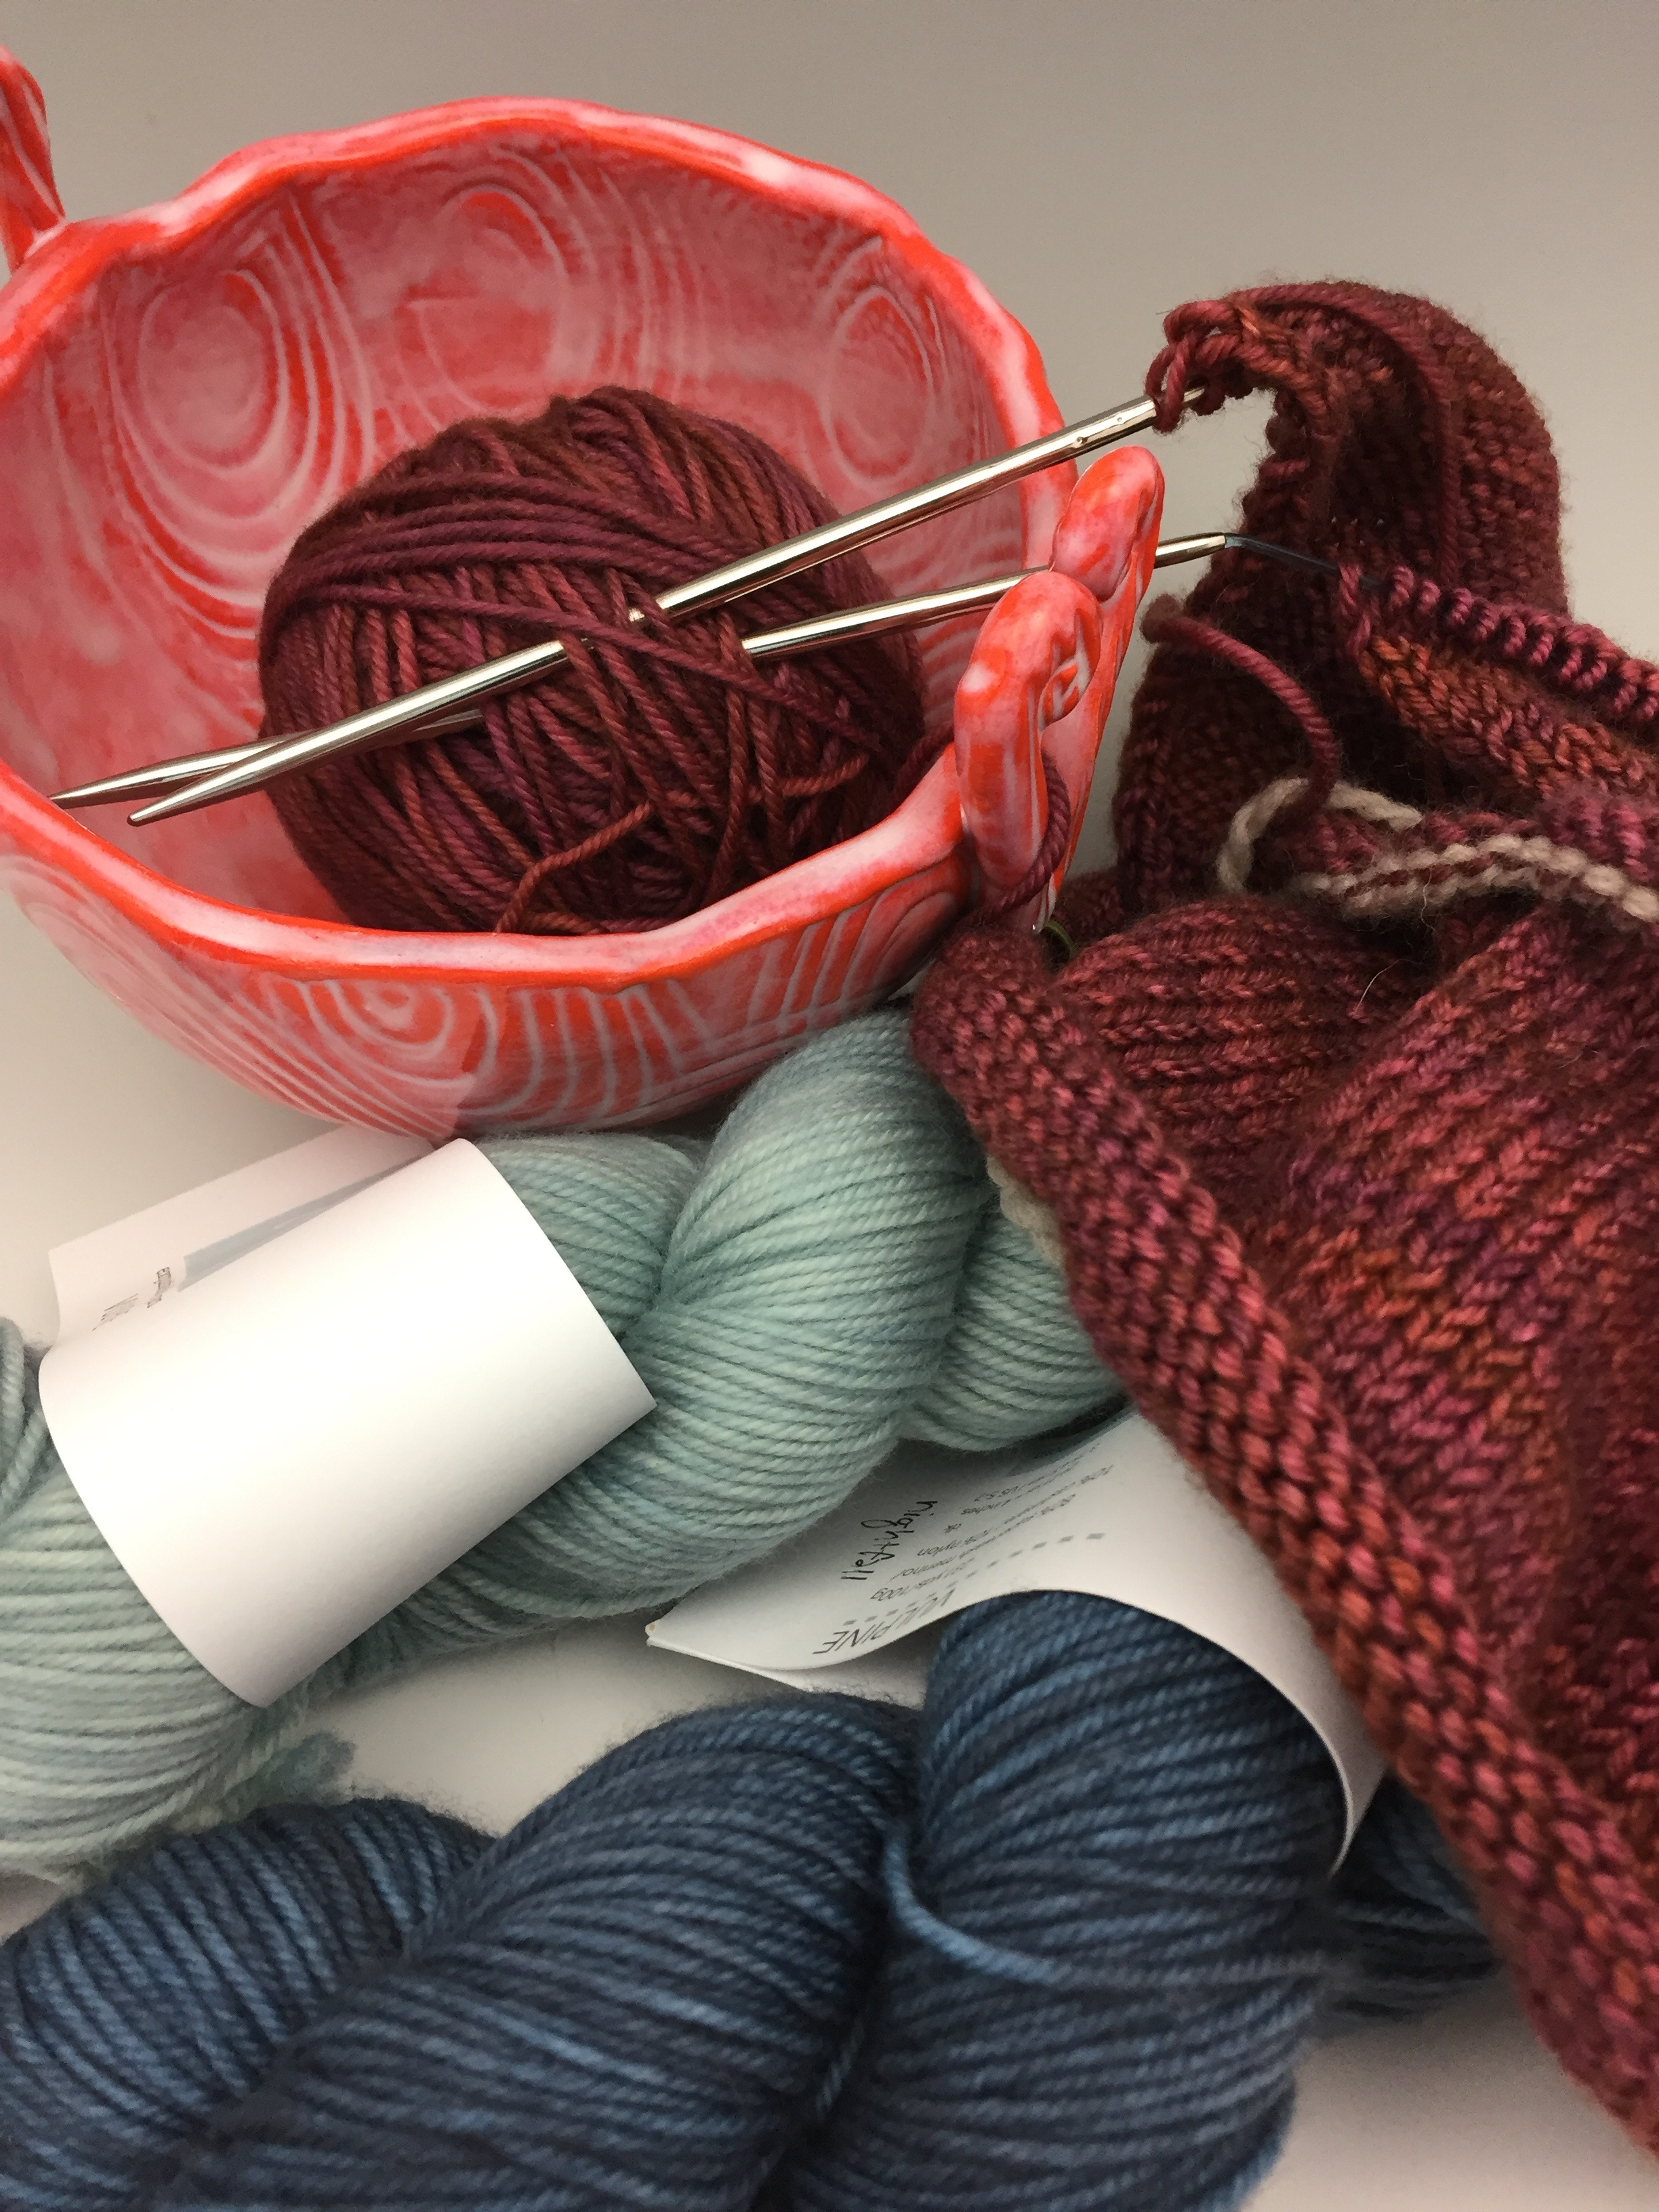 I've got a new knitting project on my needles. I picked up the Little Fox yarn at a trunk show hosted by The Knot House and couldn't resist the  Blue Sand Cardigan  sweater sample I saw there. So this is what I'm working on by the fire each night!